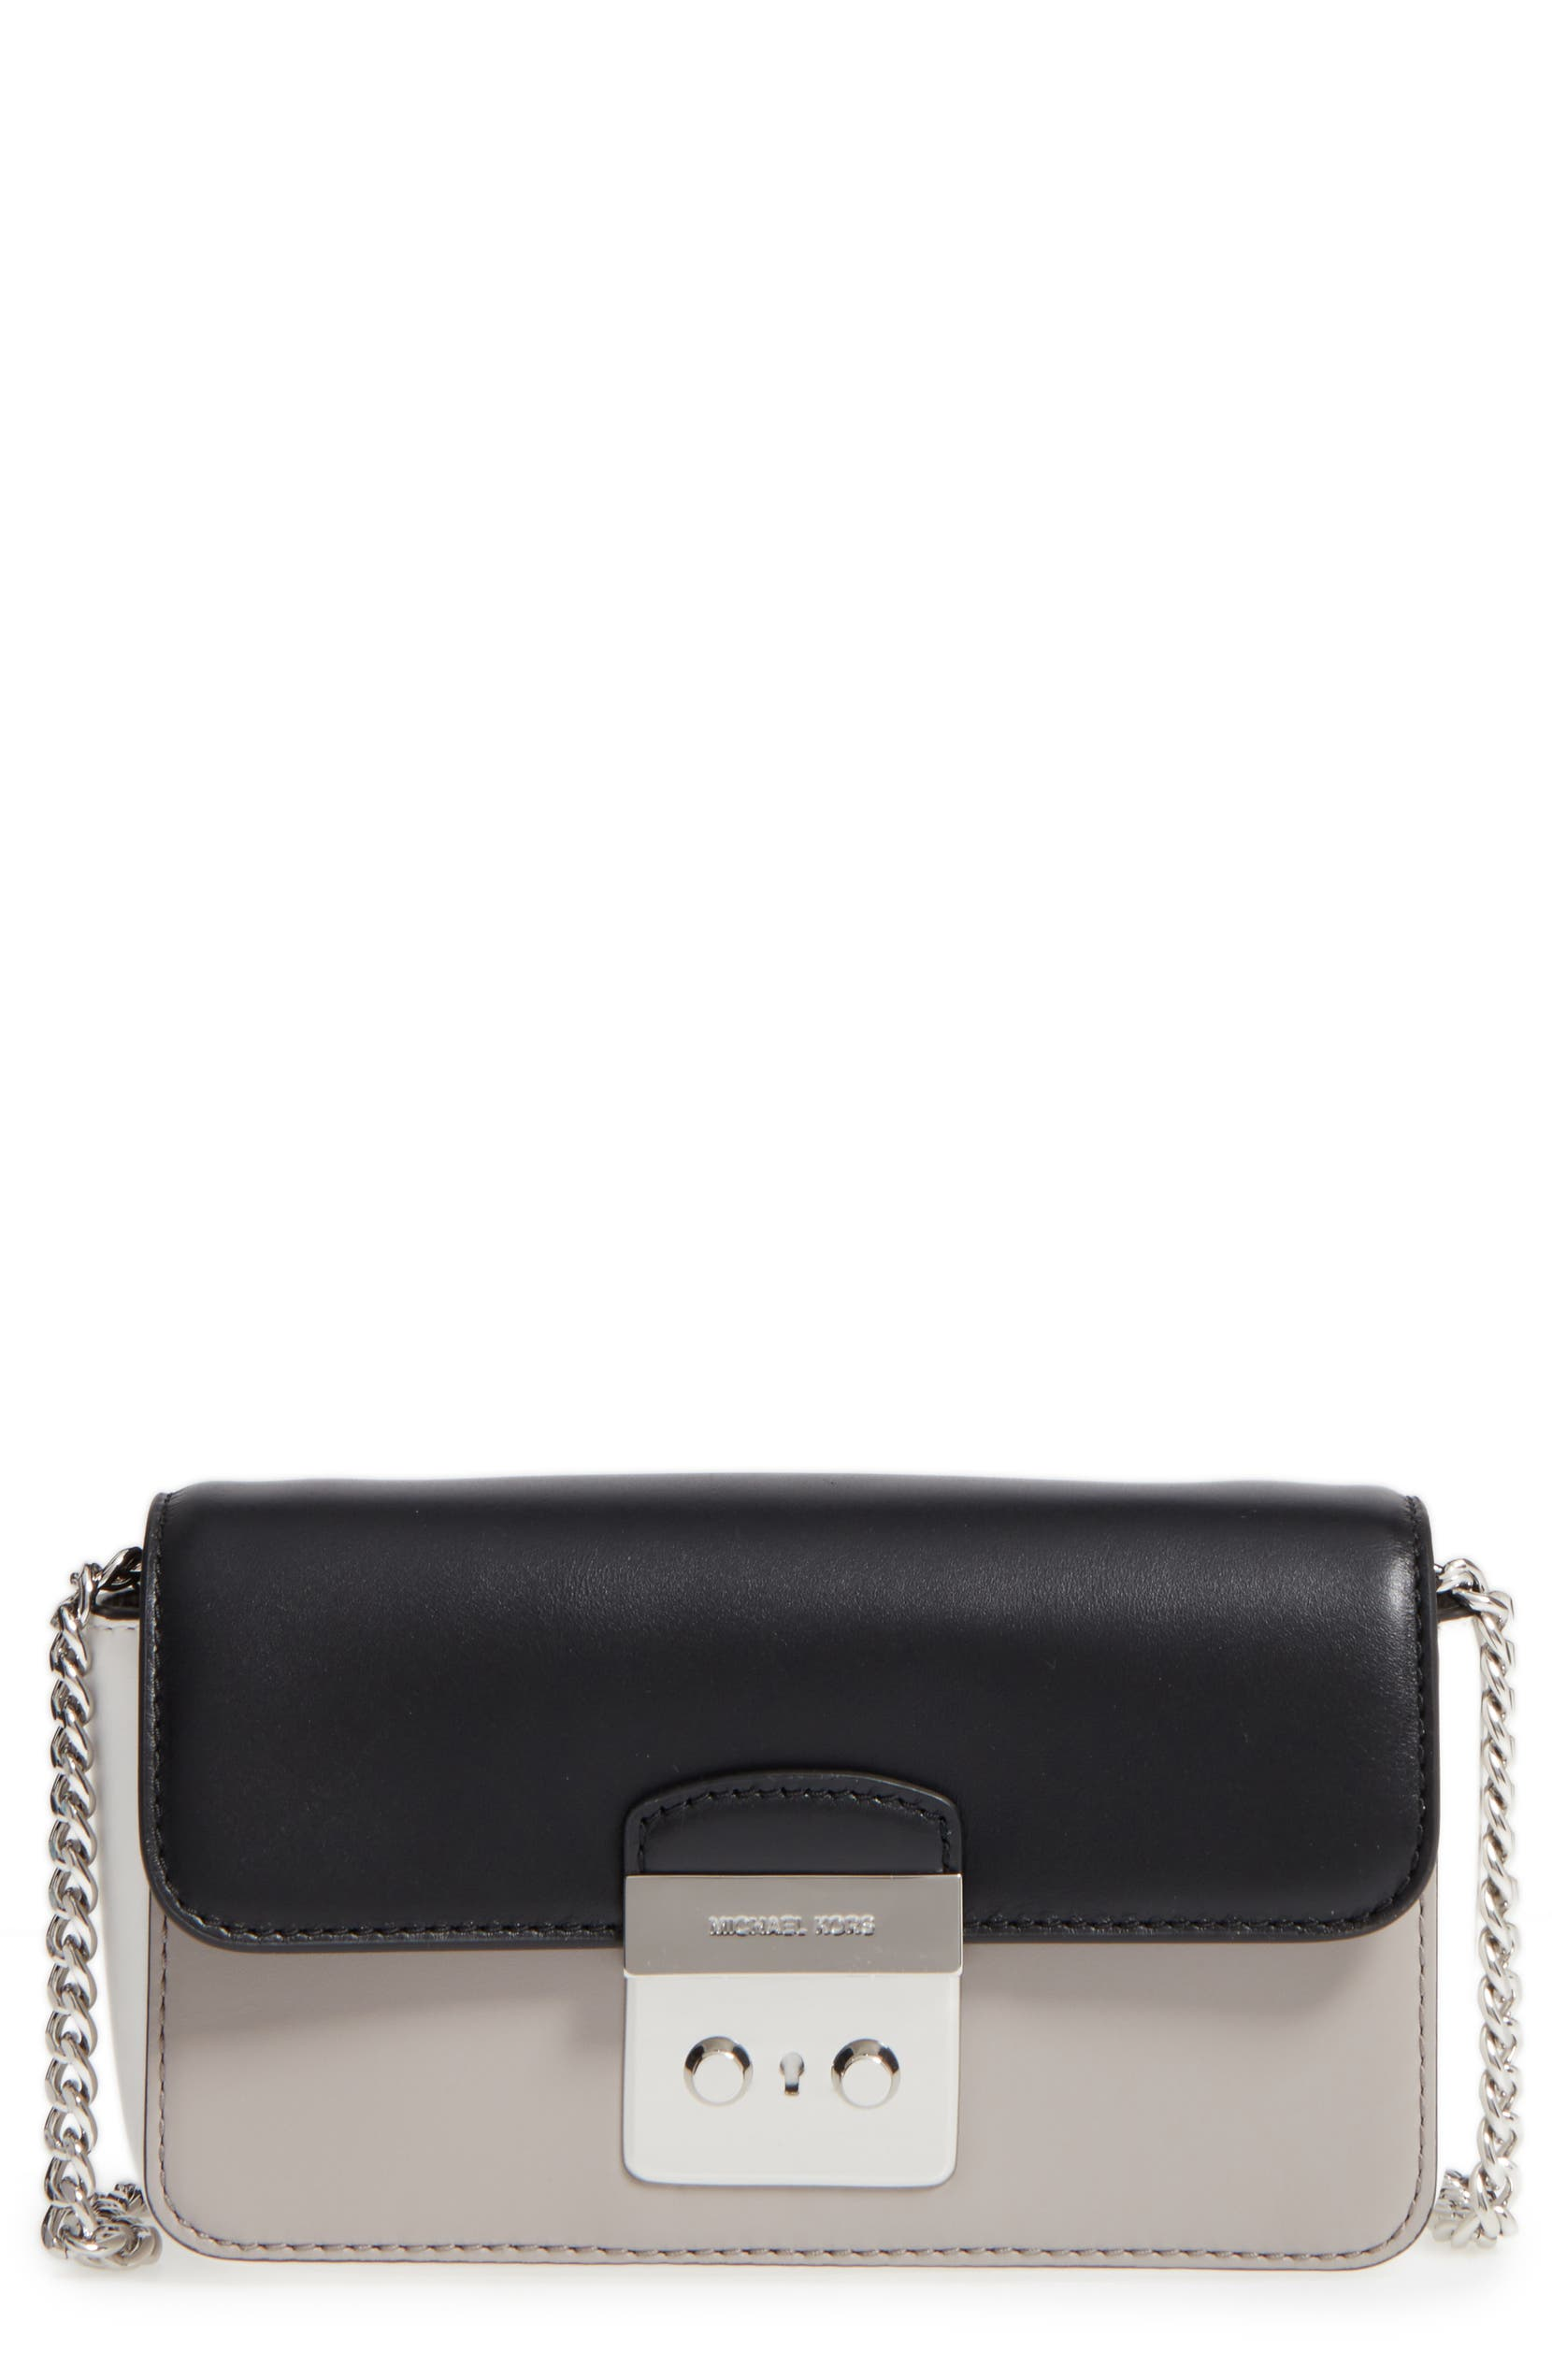 0283ae15d572 MICHAEL Michael Kors Sloan Editor Leather Wallet on a Chain | Nordstrom